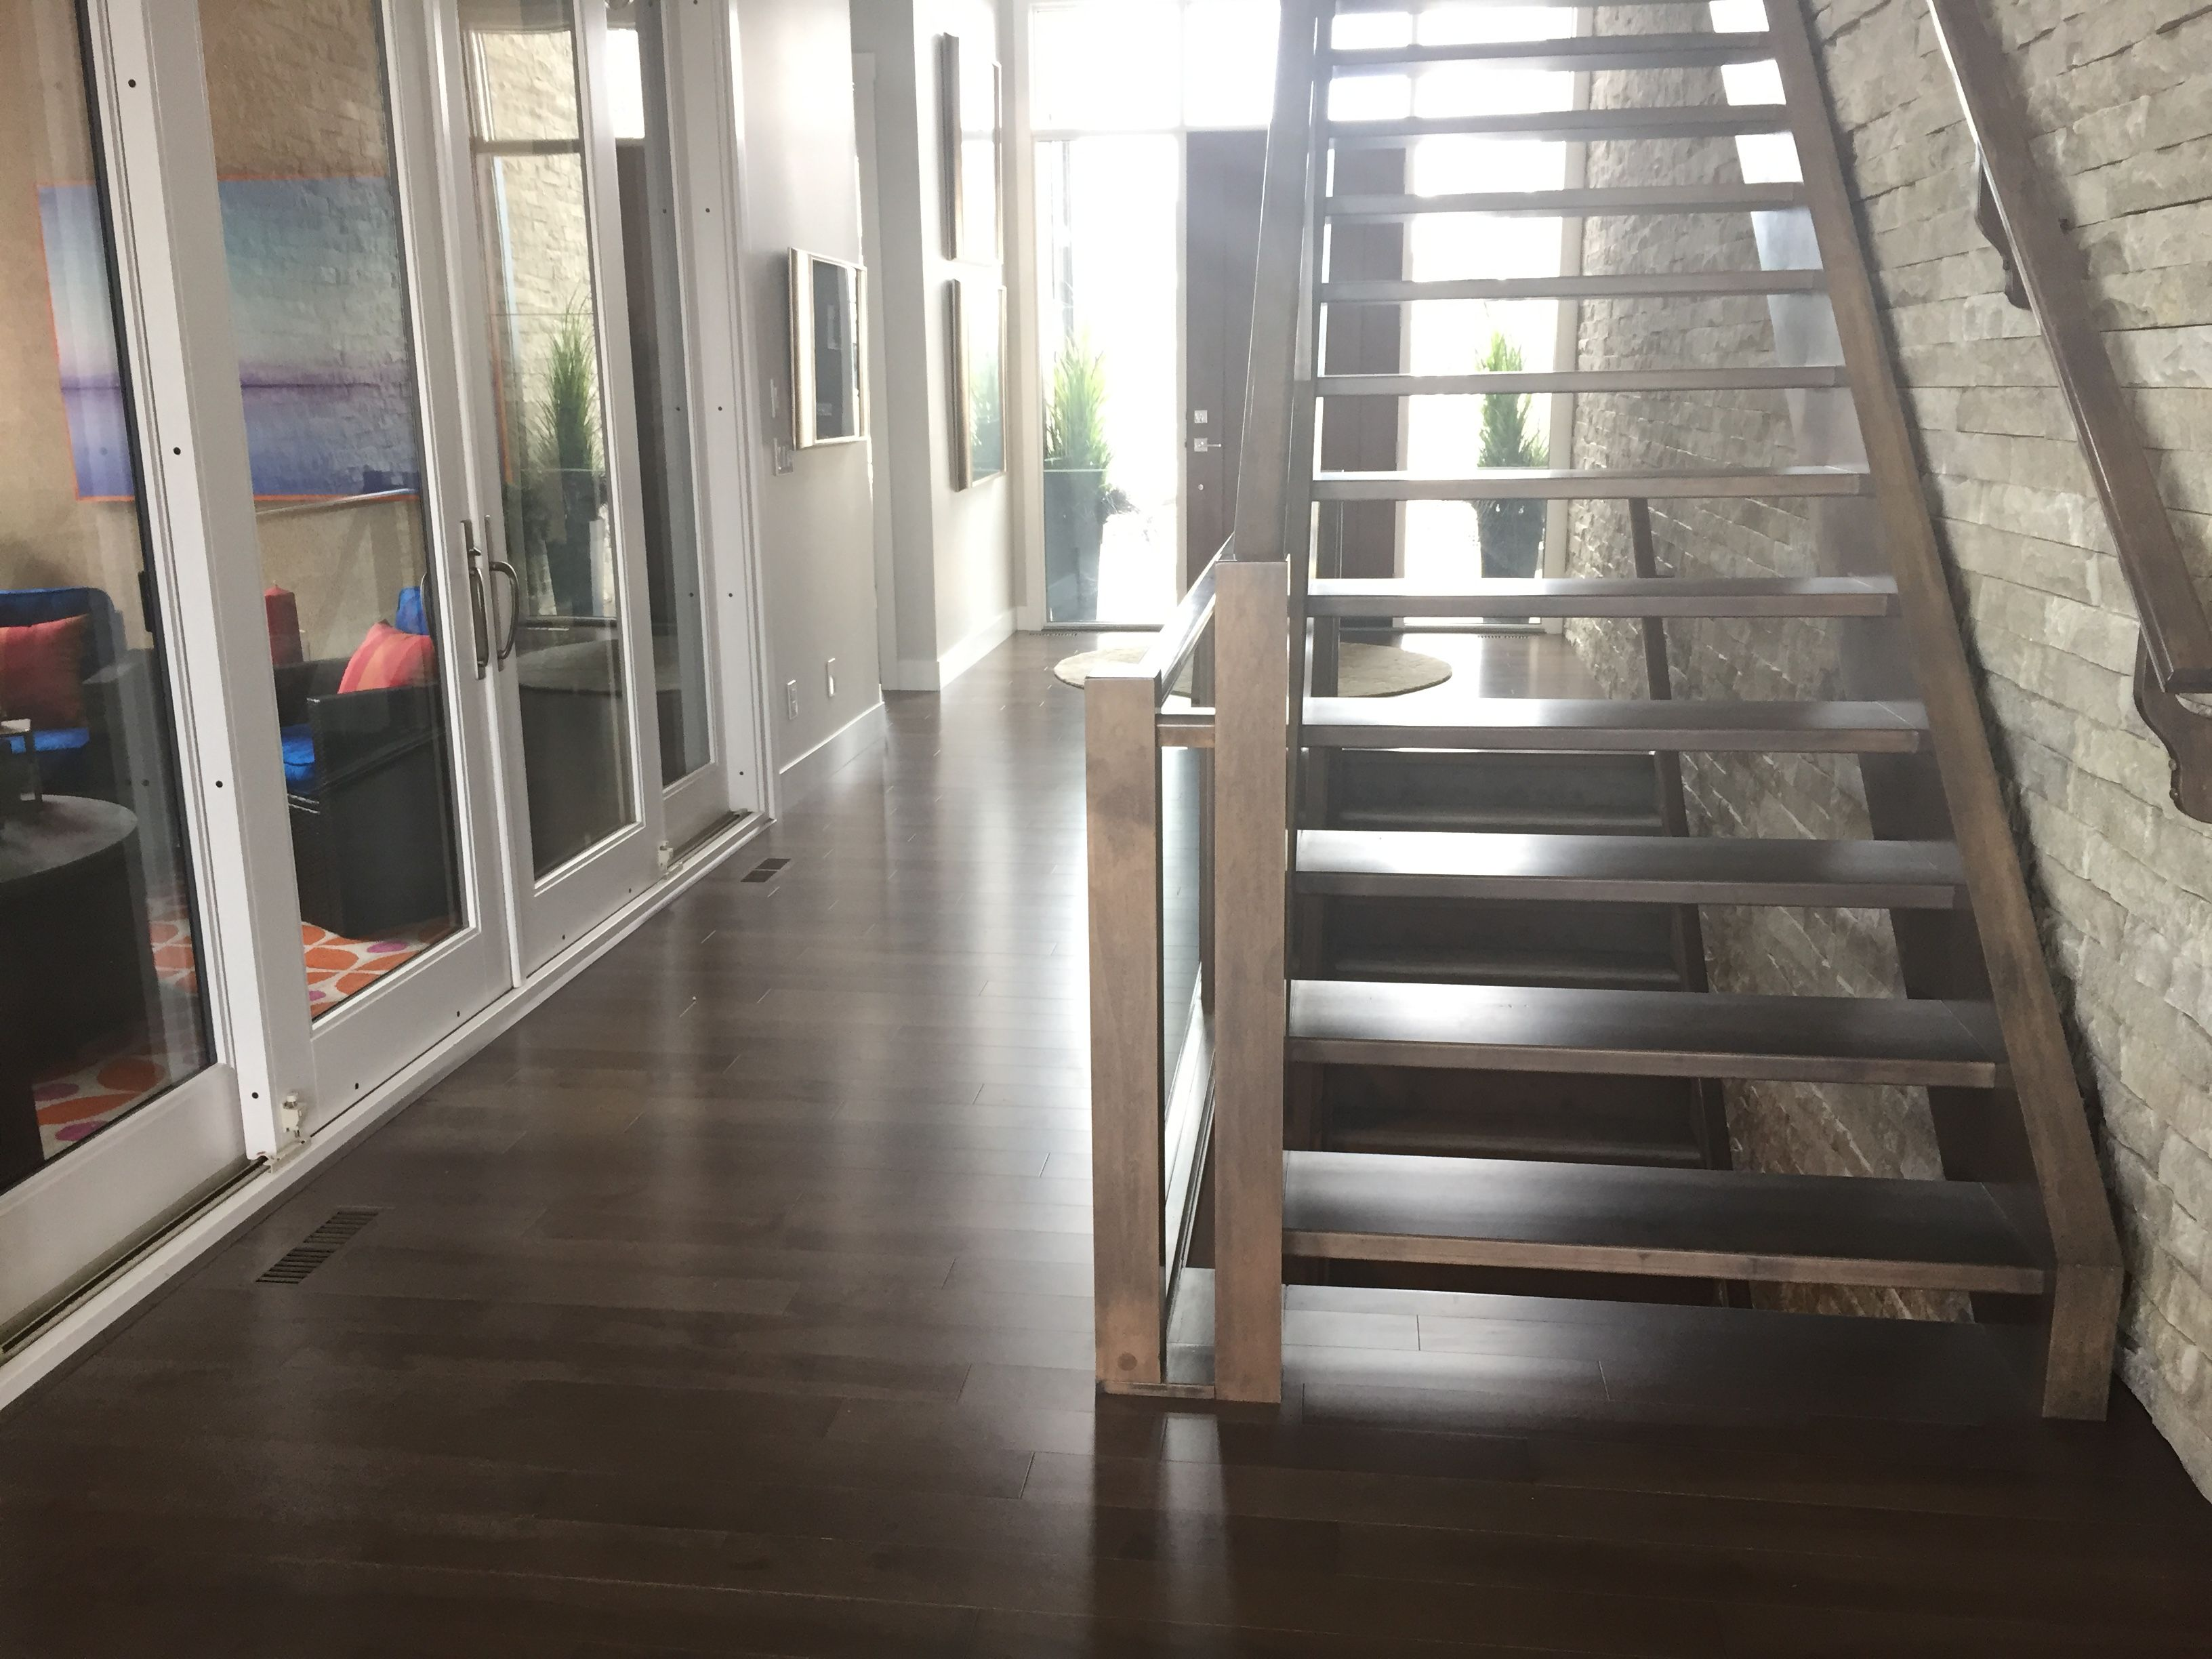 Beautiful entry from the Cantata Showhome featuring Lauzon's Smokey Grey Hard Maple hardwood flooring from the Essential Collection. Project realized by Baywest Homes in the Rocky View County (Springbank) Harmony collection. #interiordesign #hardwoodfloor #artfromnature @baywesthomes